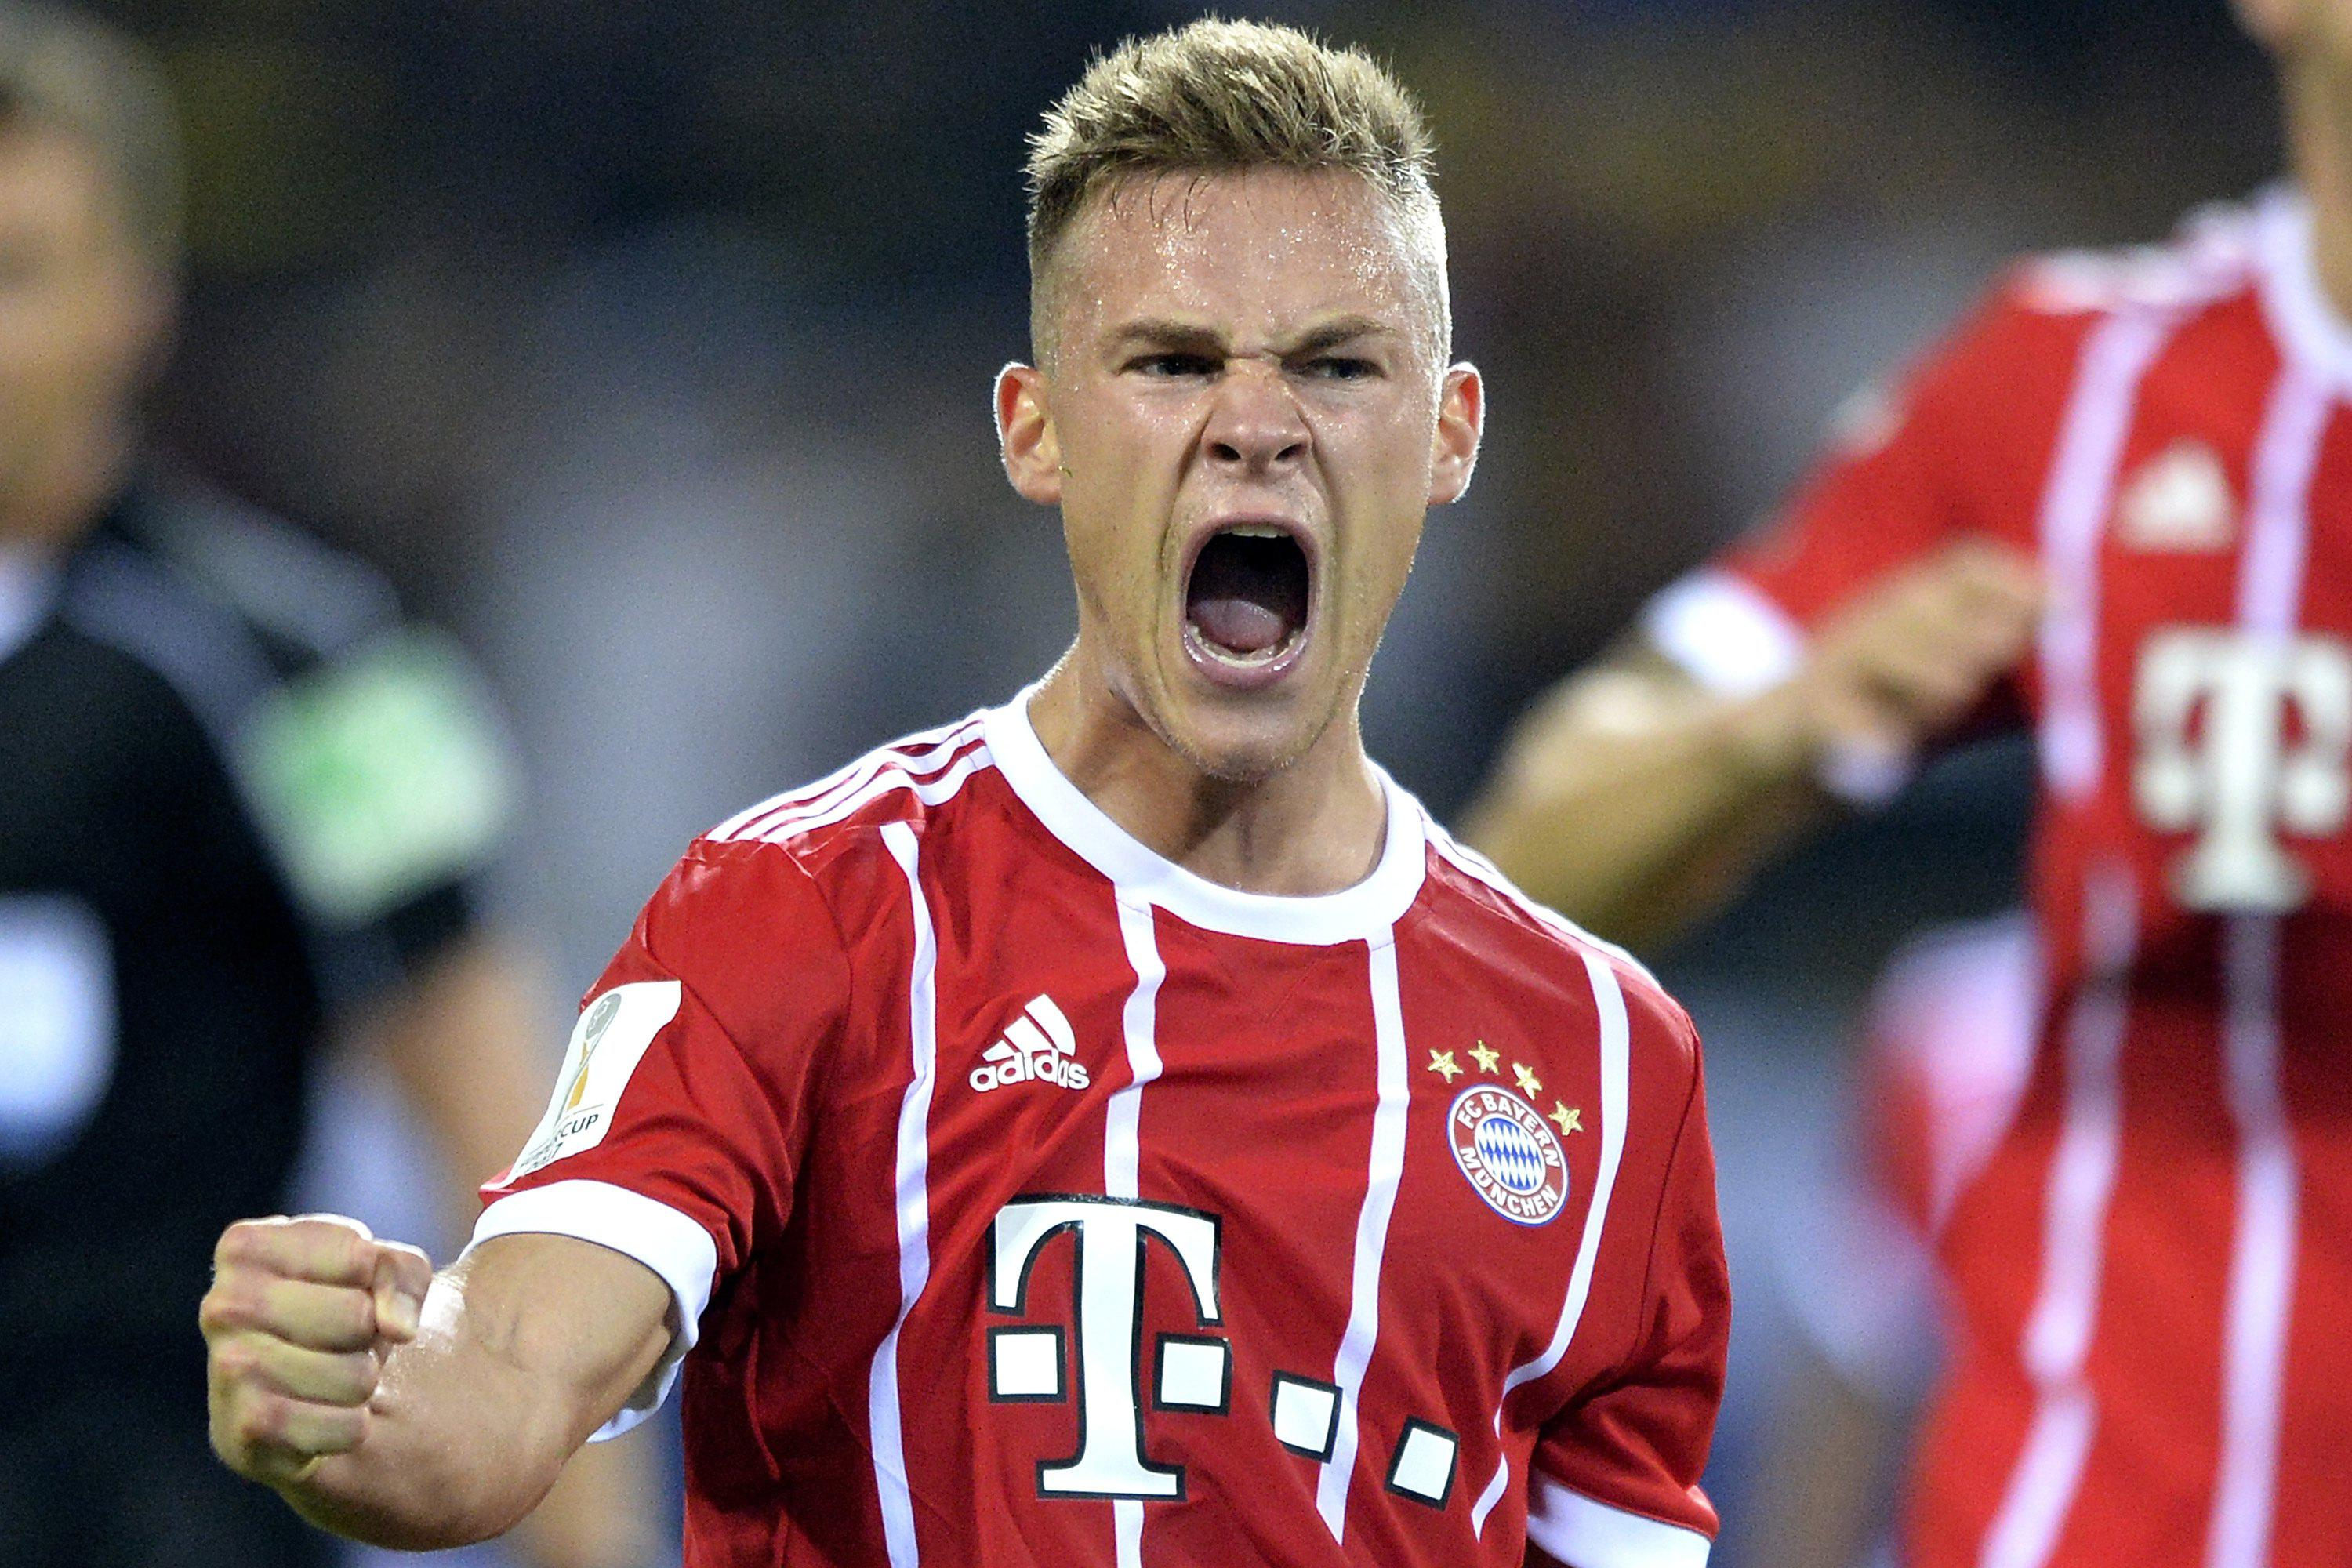 Kimmich has become a key figure for both Bayern and Germany